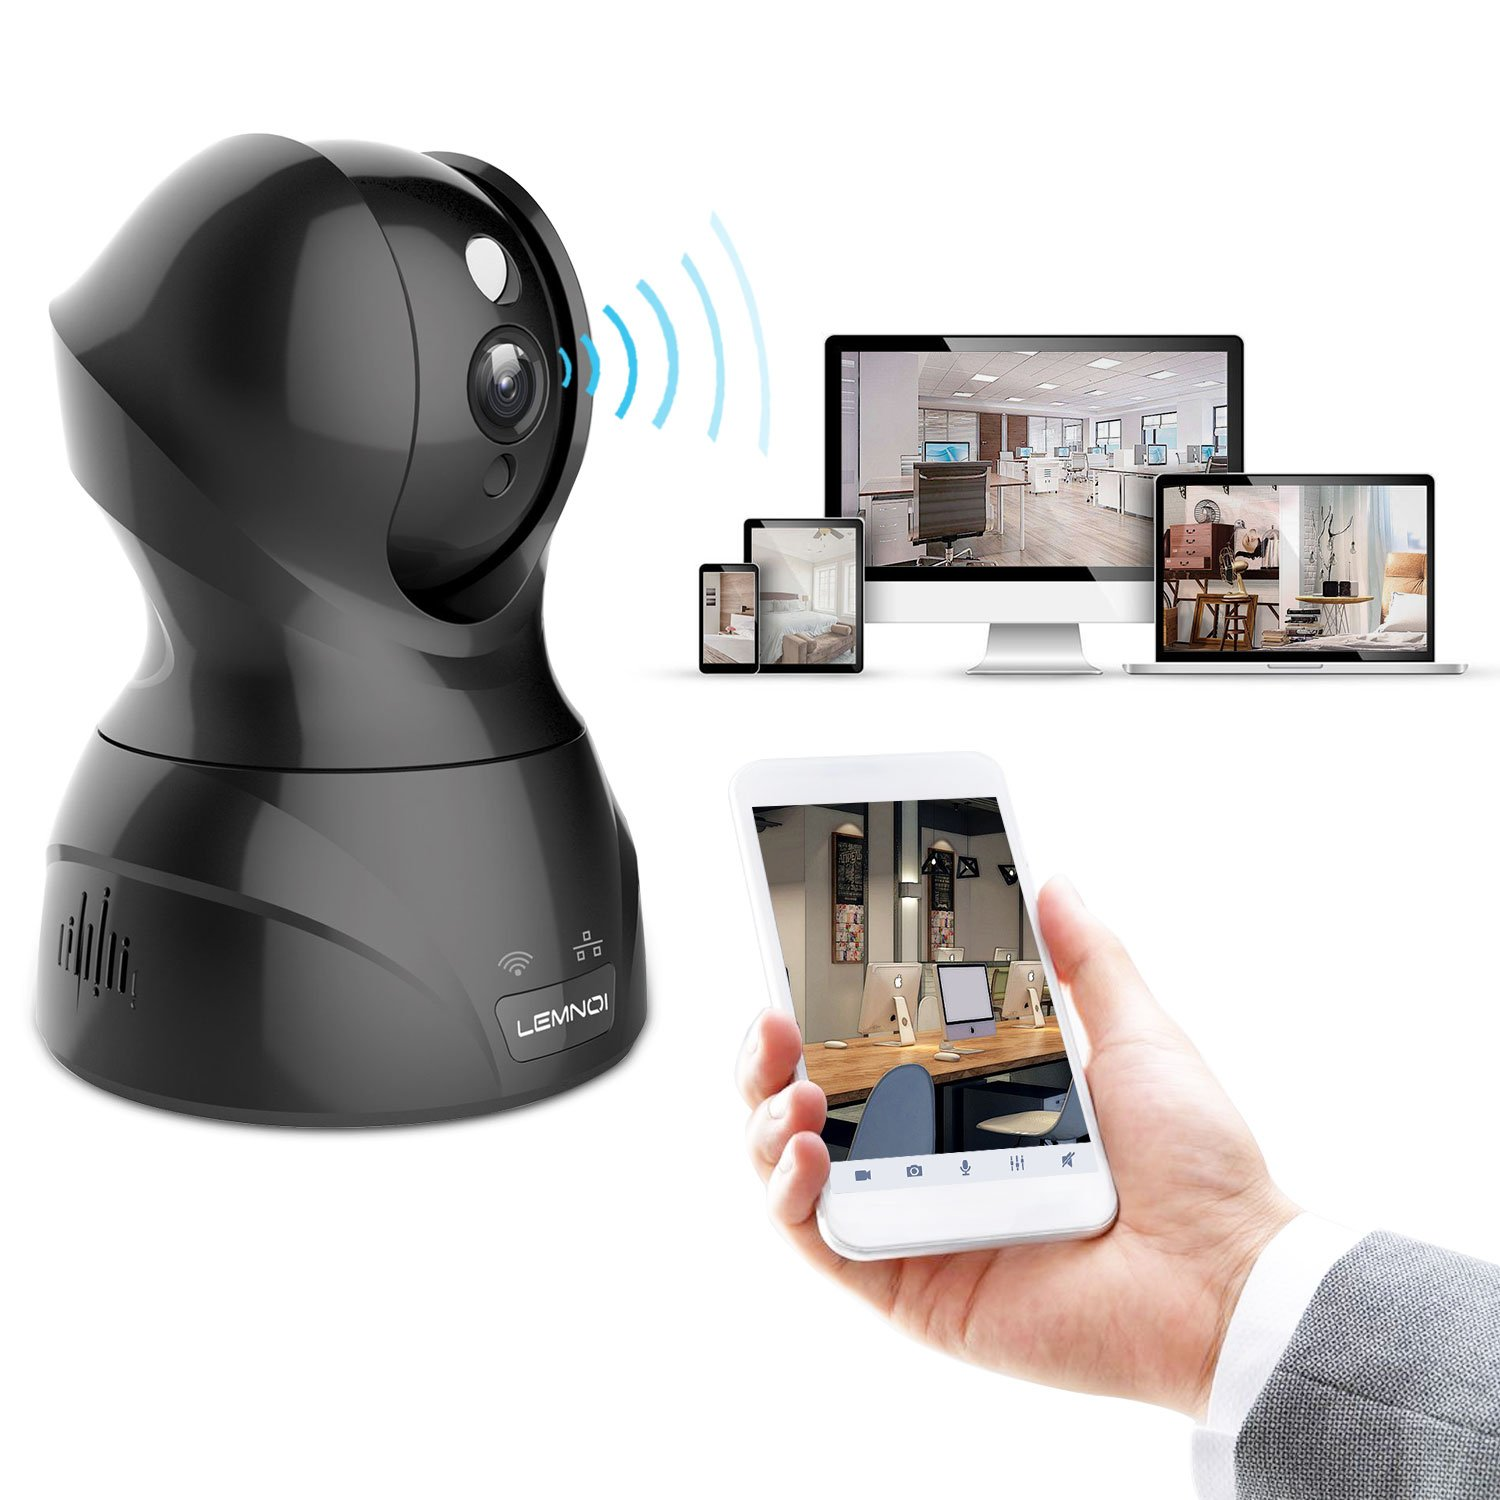 WiFi IP Camera 1080P, Lemnoi Wireless Security Camera Home Security Surveillance with Pan/Tilt/Zoom, Night Vision, Two Way Audio, Motion Dection Compatible with iOS/Android/Win (1080P)